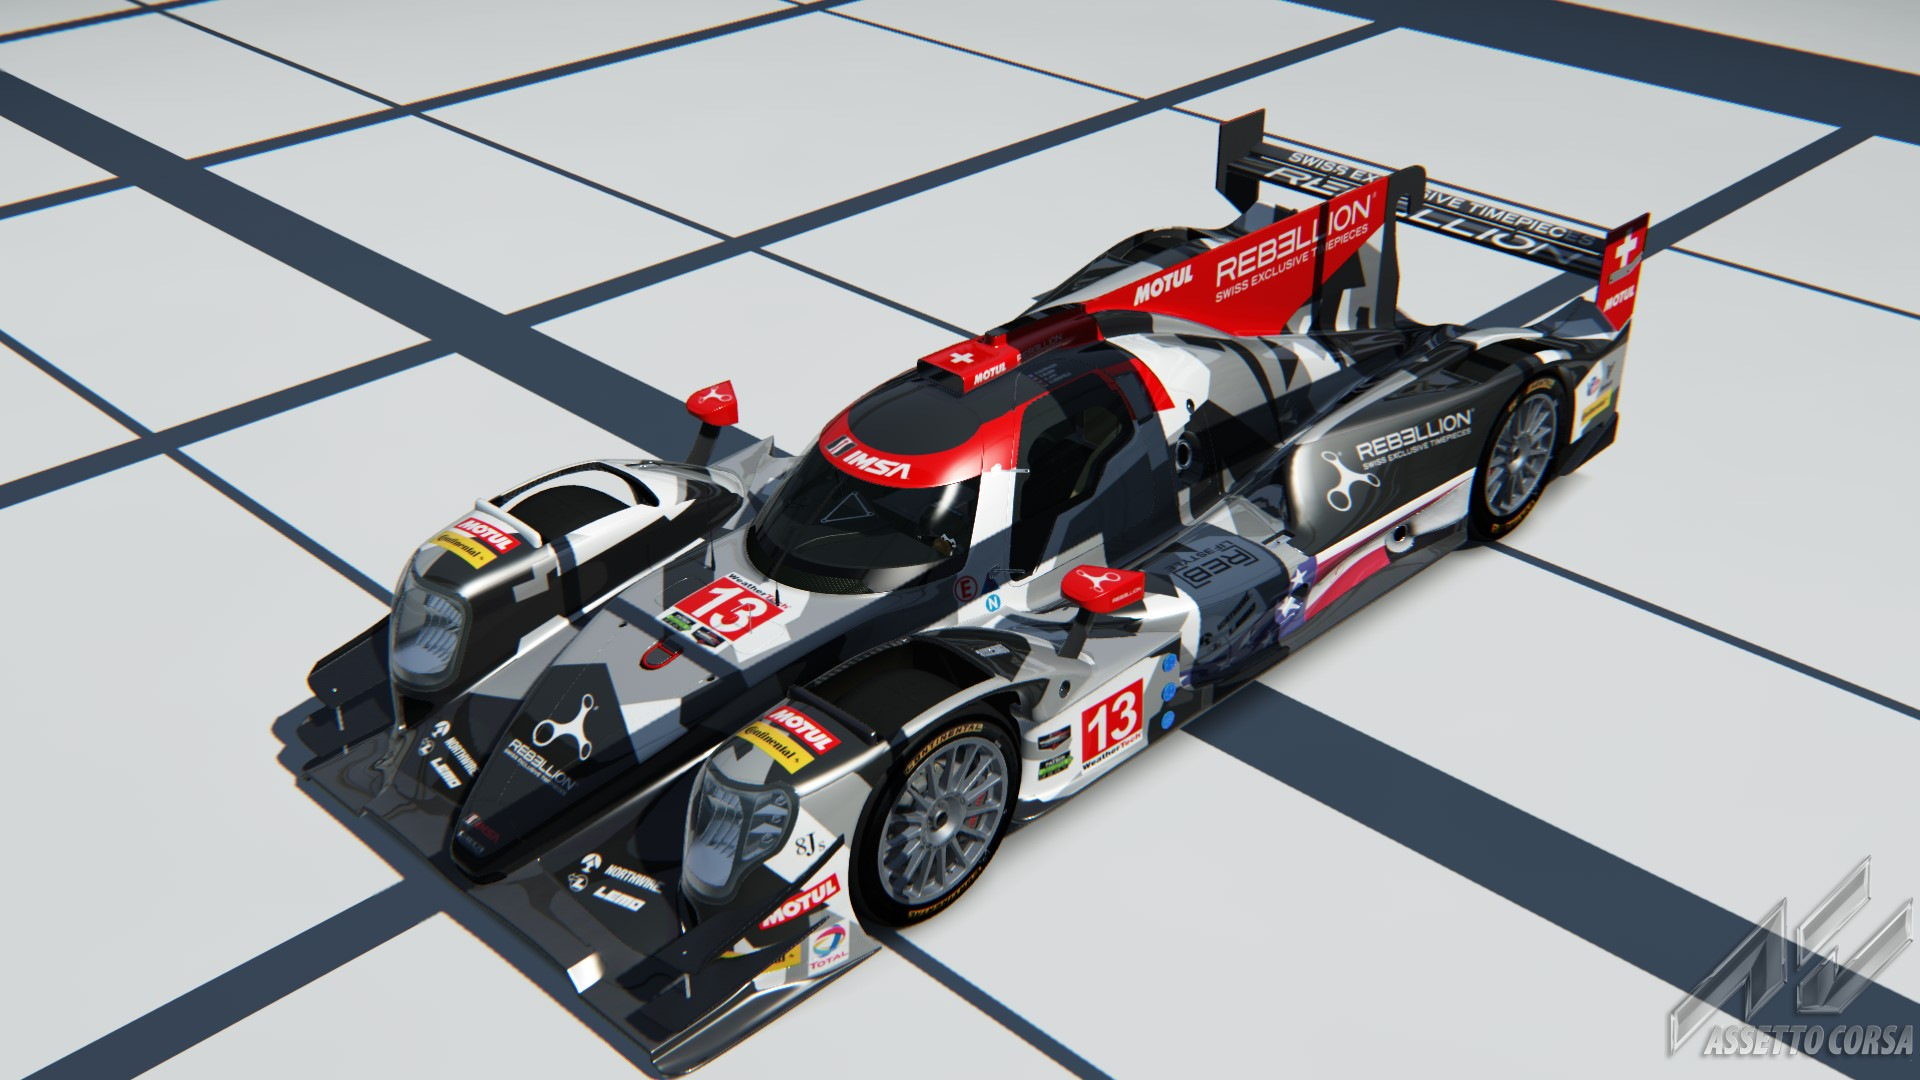 Showroom_rtm_oreca_07_lmp2_9-11-2017-1-3-49.jpg